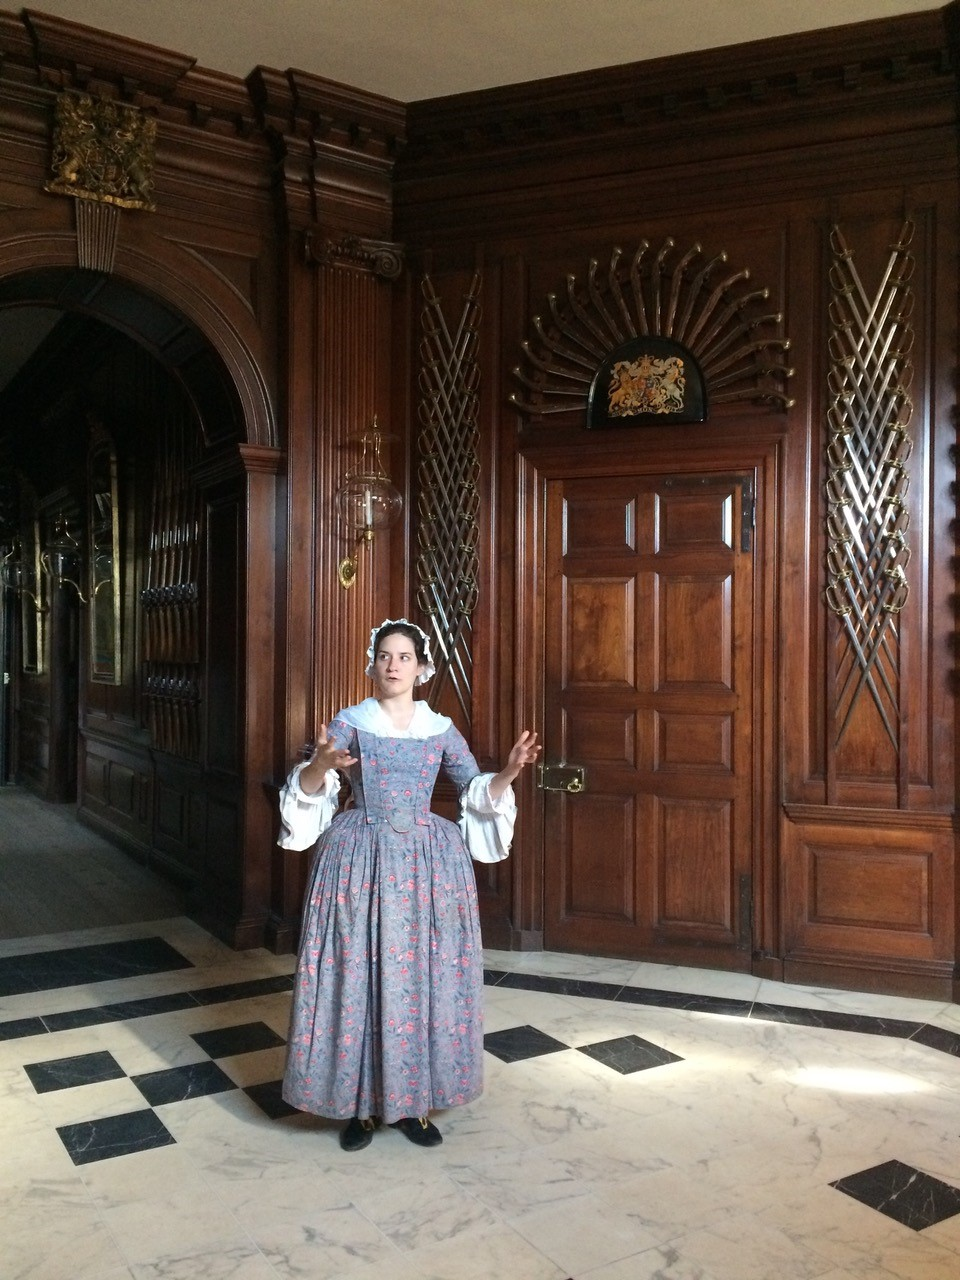 Bryn Athyn College alumna Dara King ('13) guides visitors through the governor's palace